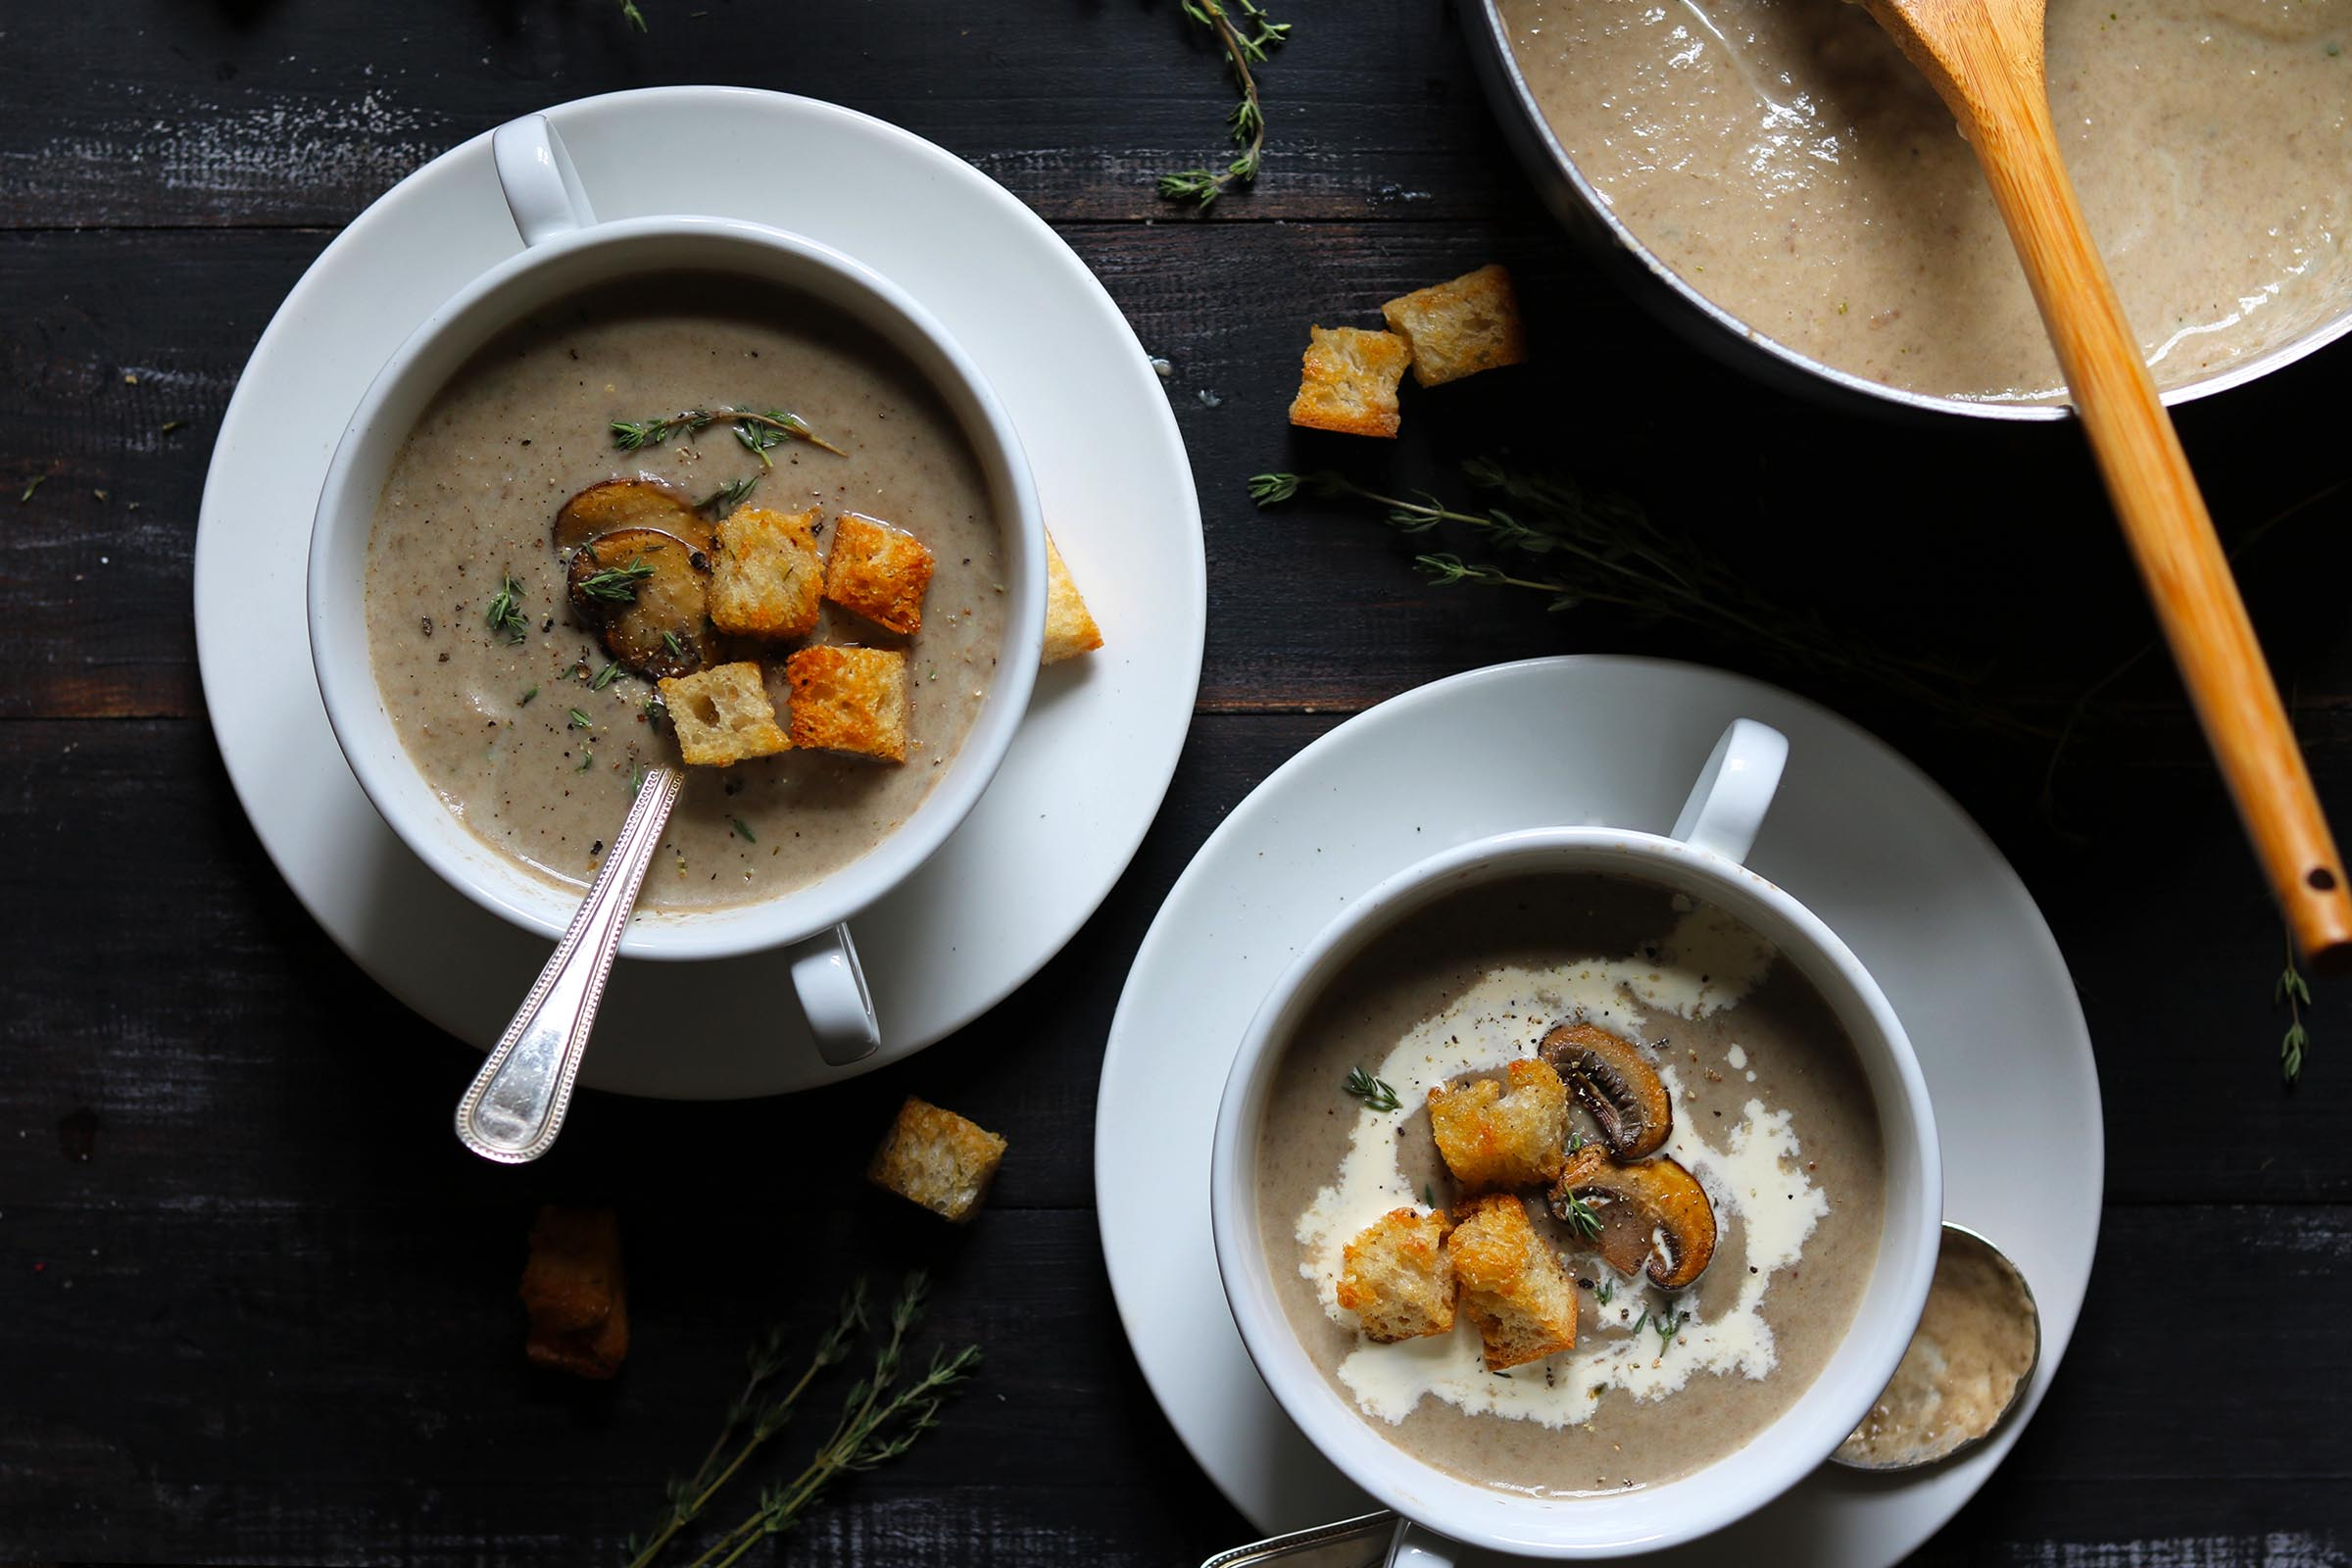 Creamy Mushroom Soup with Croutons - The Last Food Blog